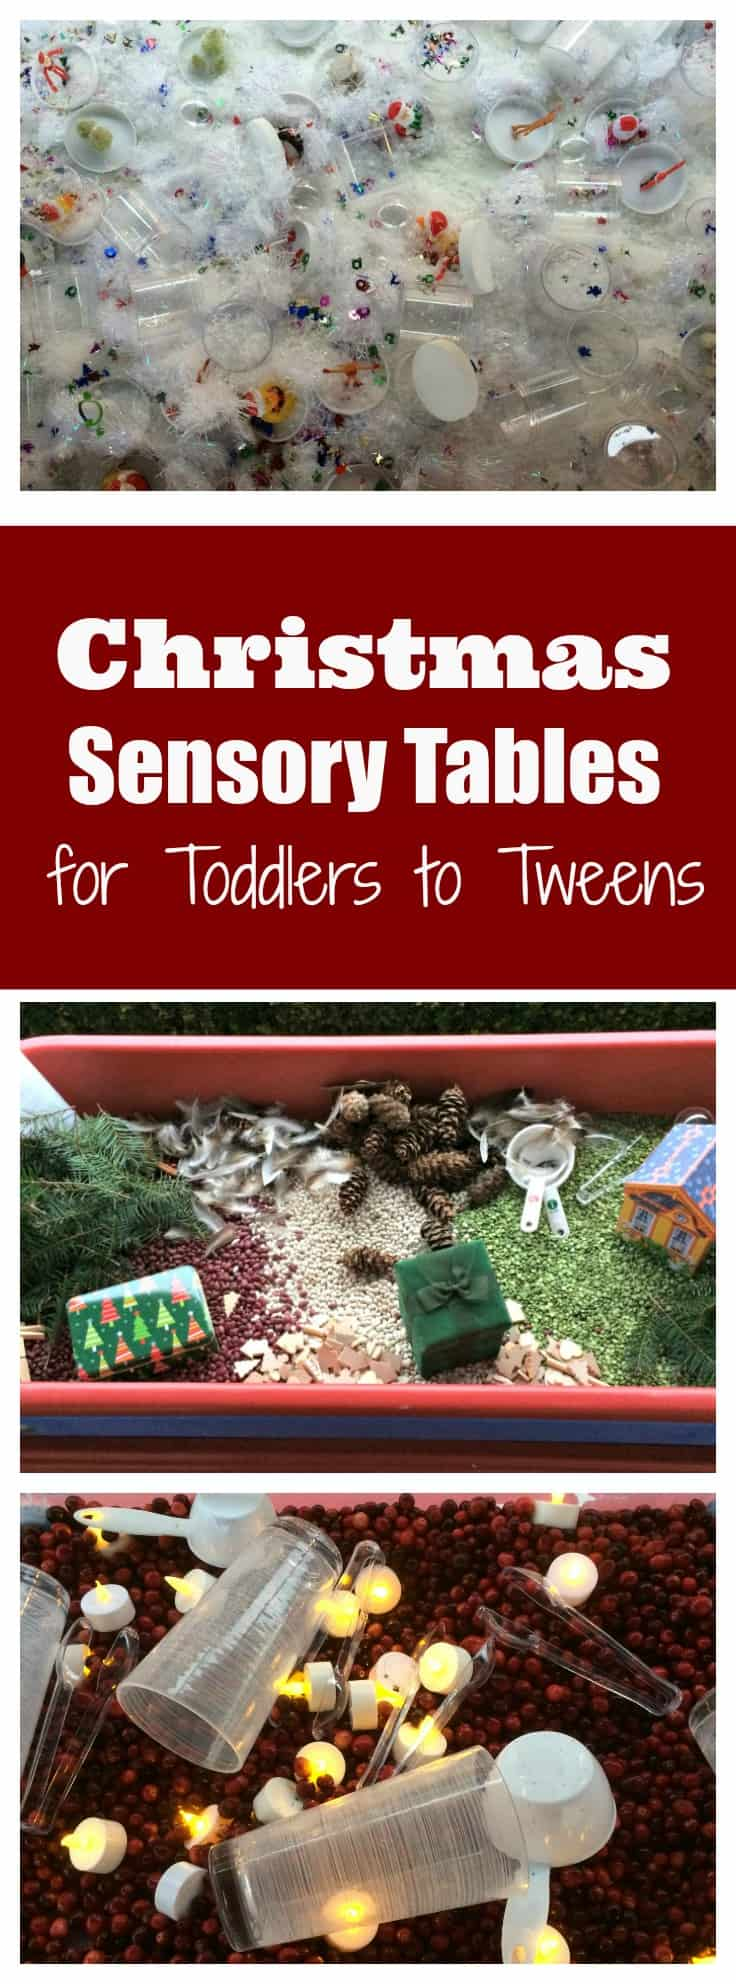 These 4 Christmas Sensory Tables will provide hours of fun for kids of all ages. Be sure to add them to your next holiday party.